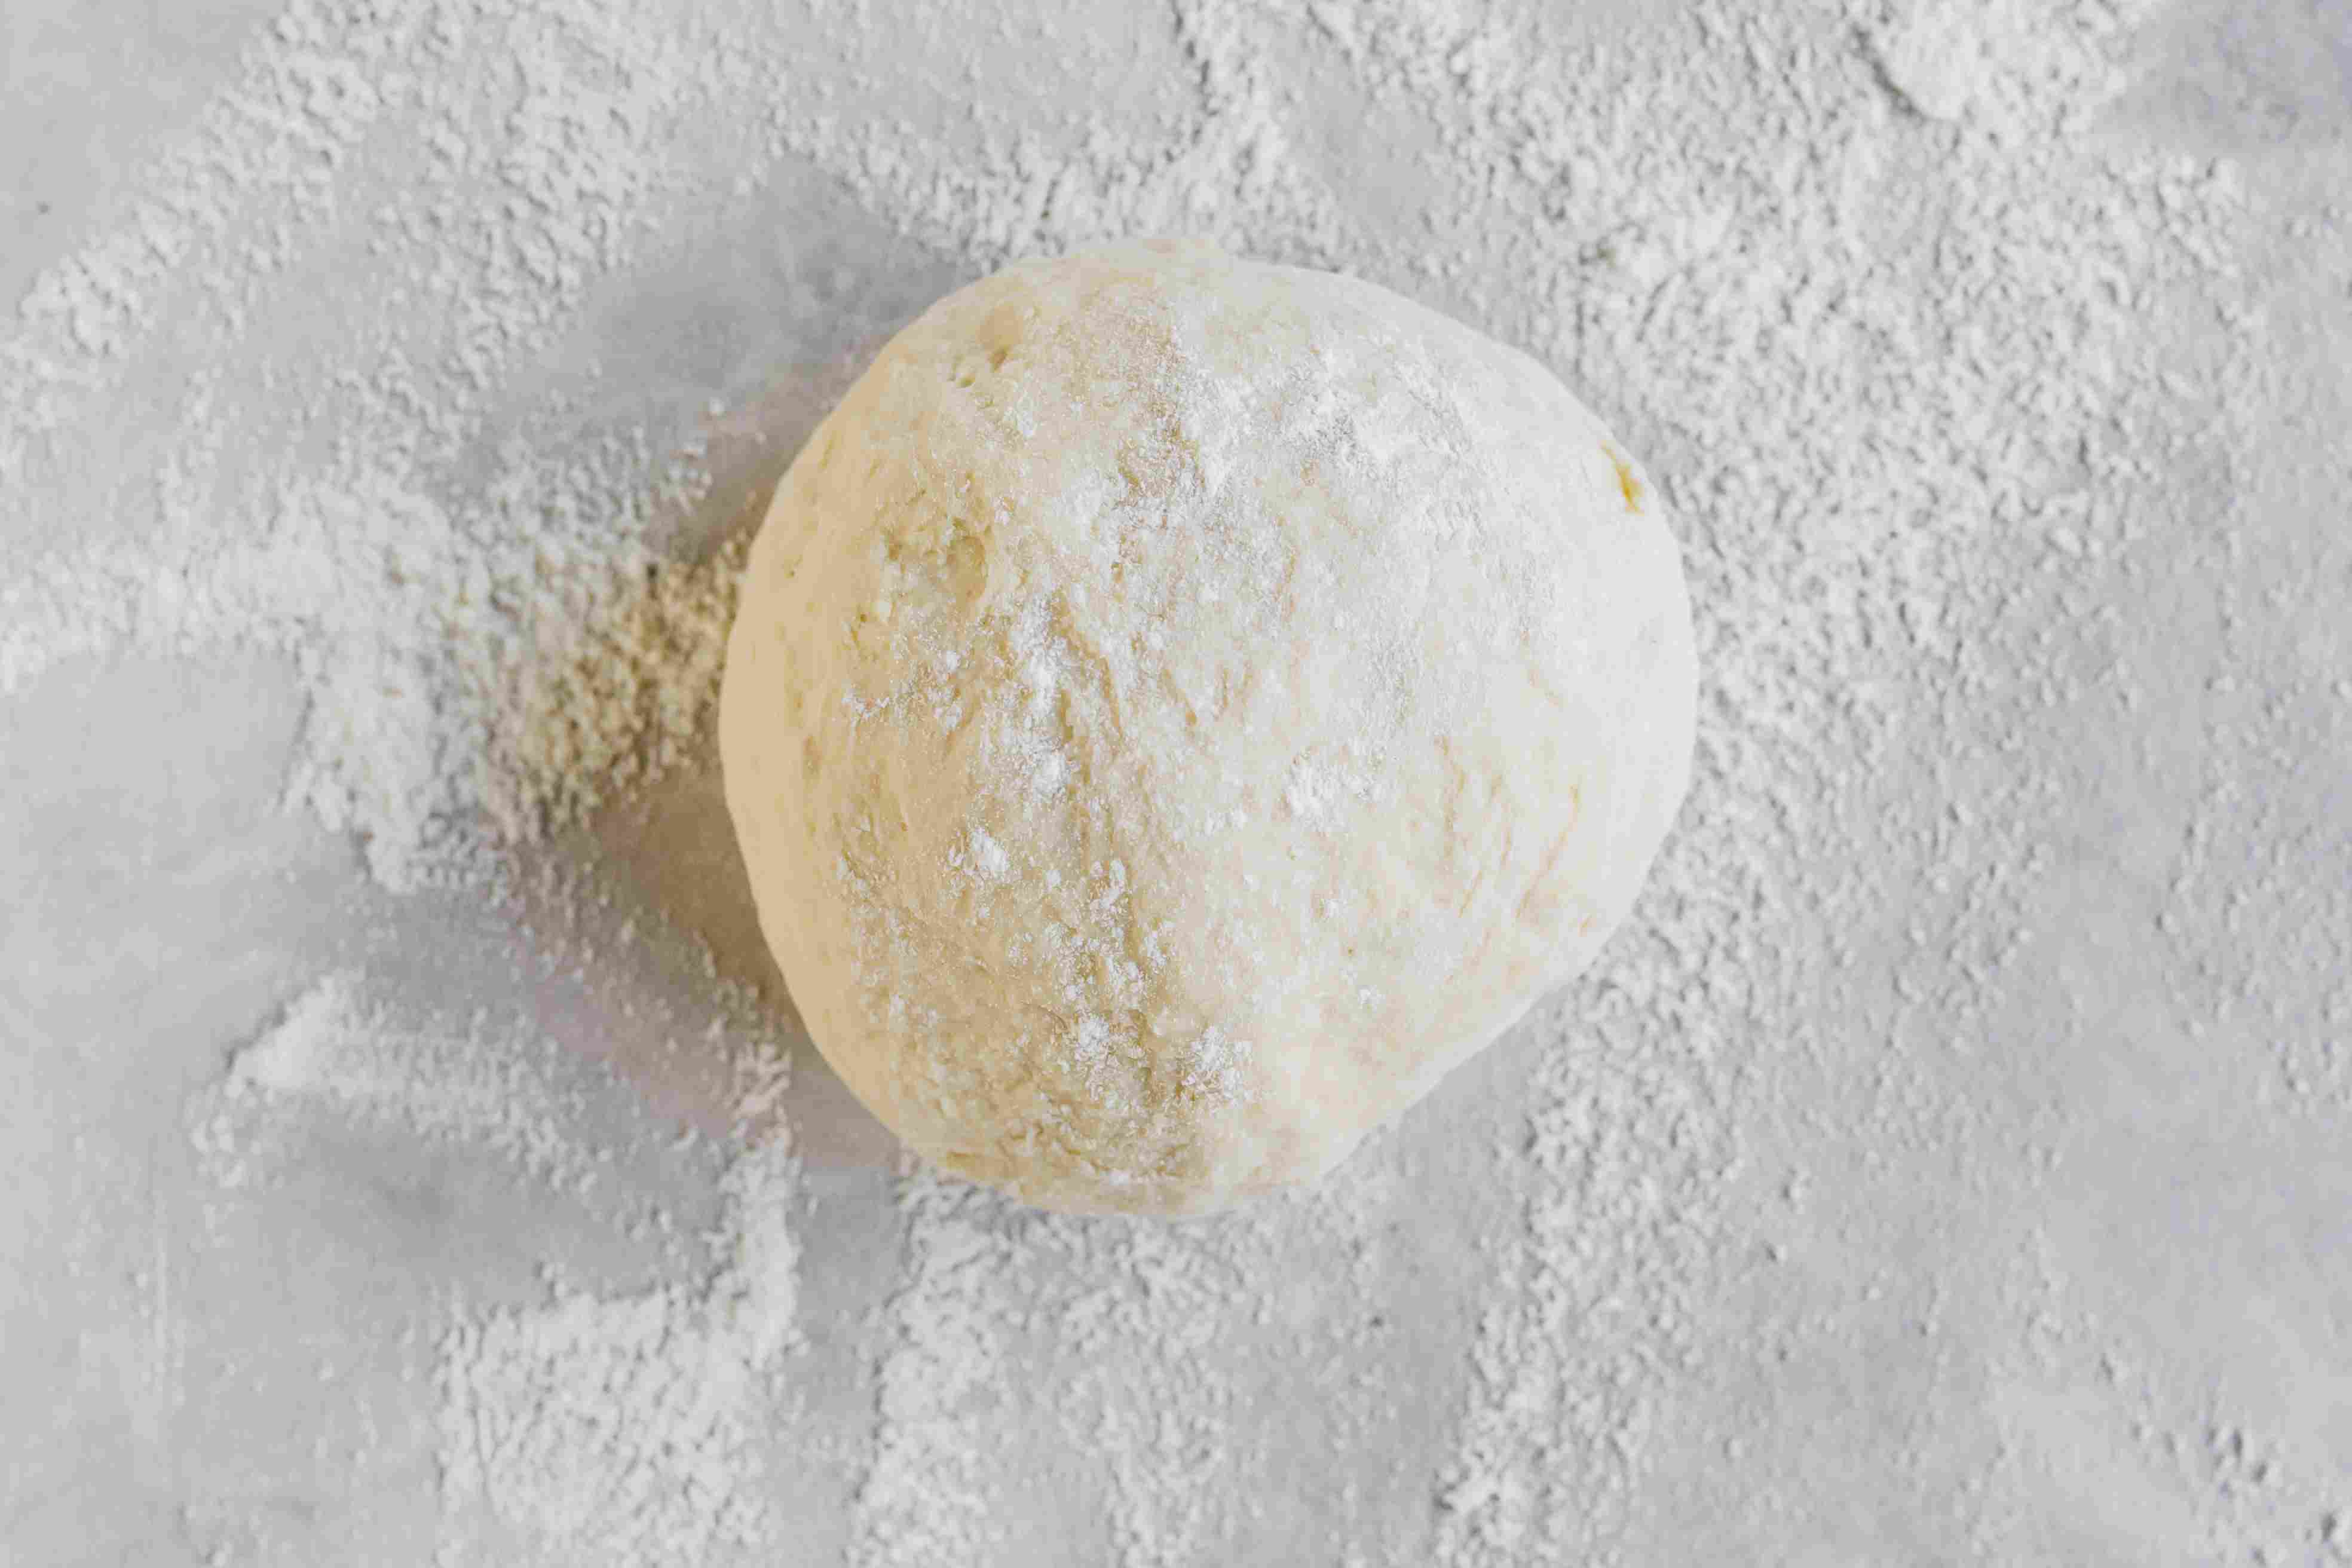 Turn the New York-style pizza dough out on a floured surface